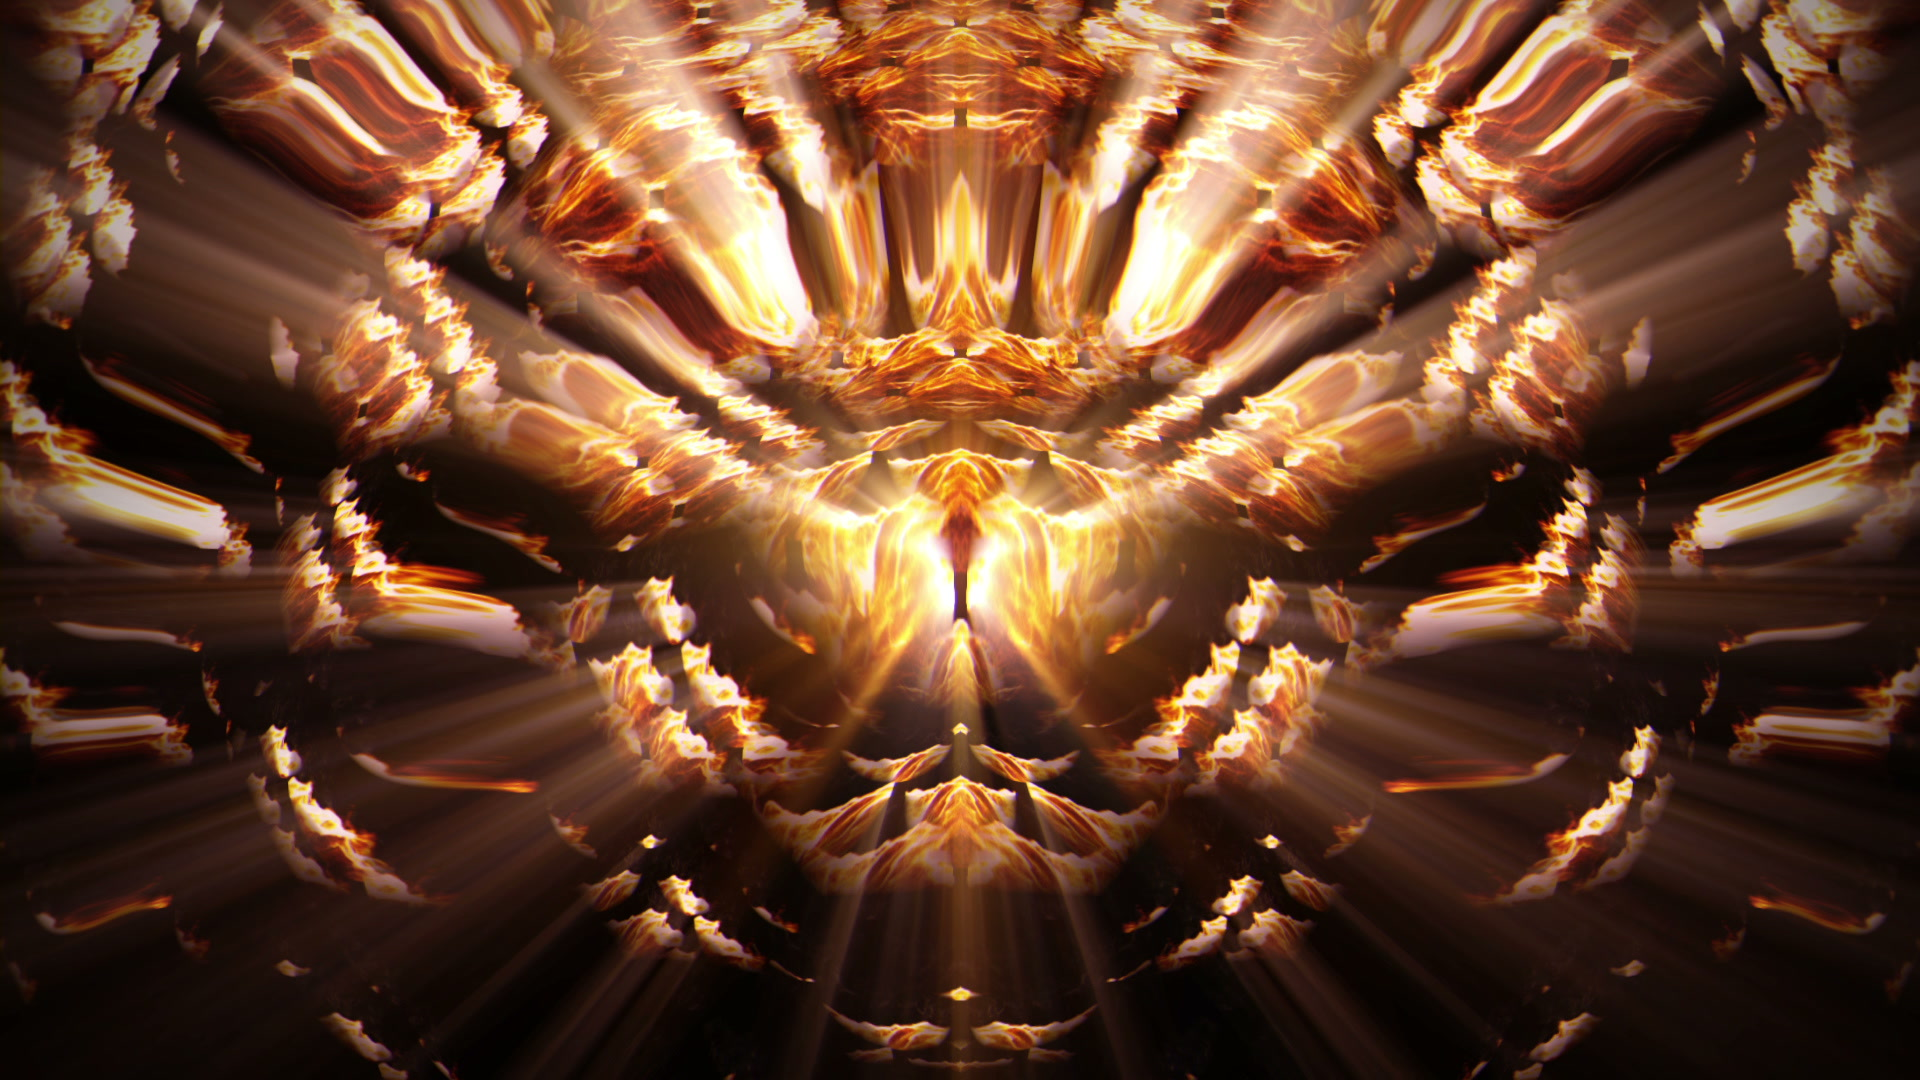 vj video background Fire-Fox-Wall-LIMEART-VJ-Loop_003